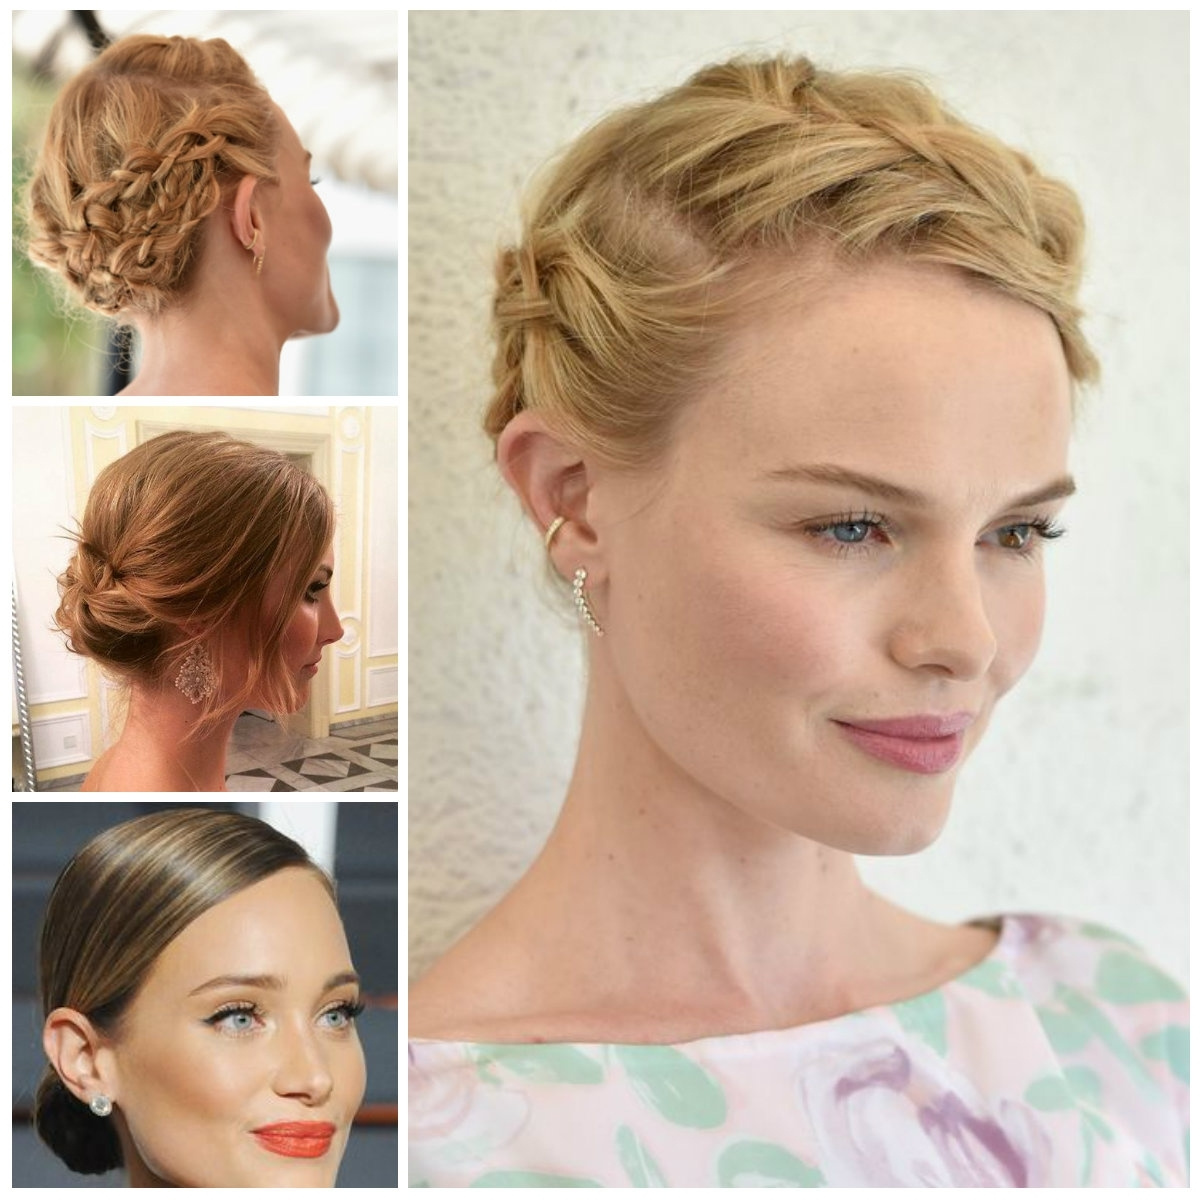 3 Elegant Updo Hairstyles For 2017 | Hairstyles 2018 New Haircuts In New Updo Hairstyles (View 3 of 15)